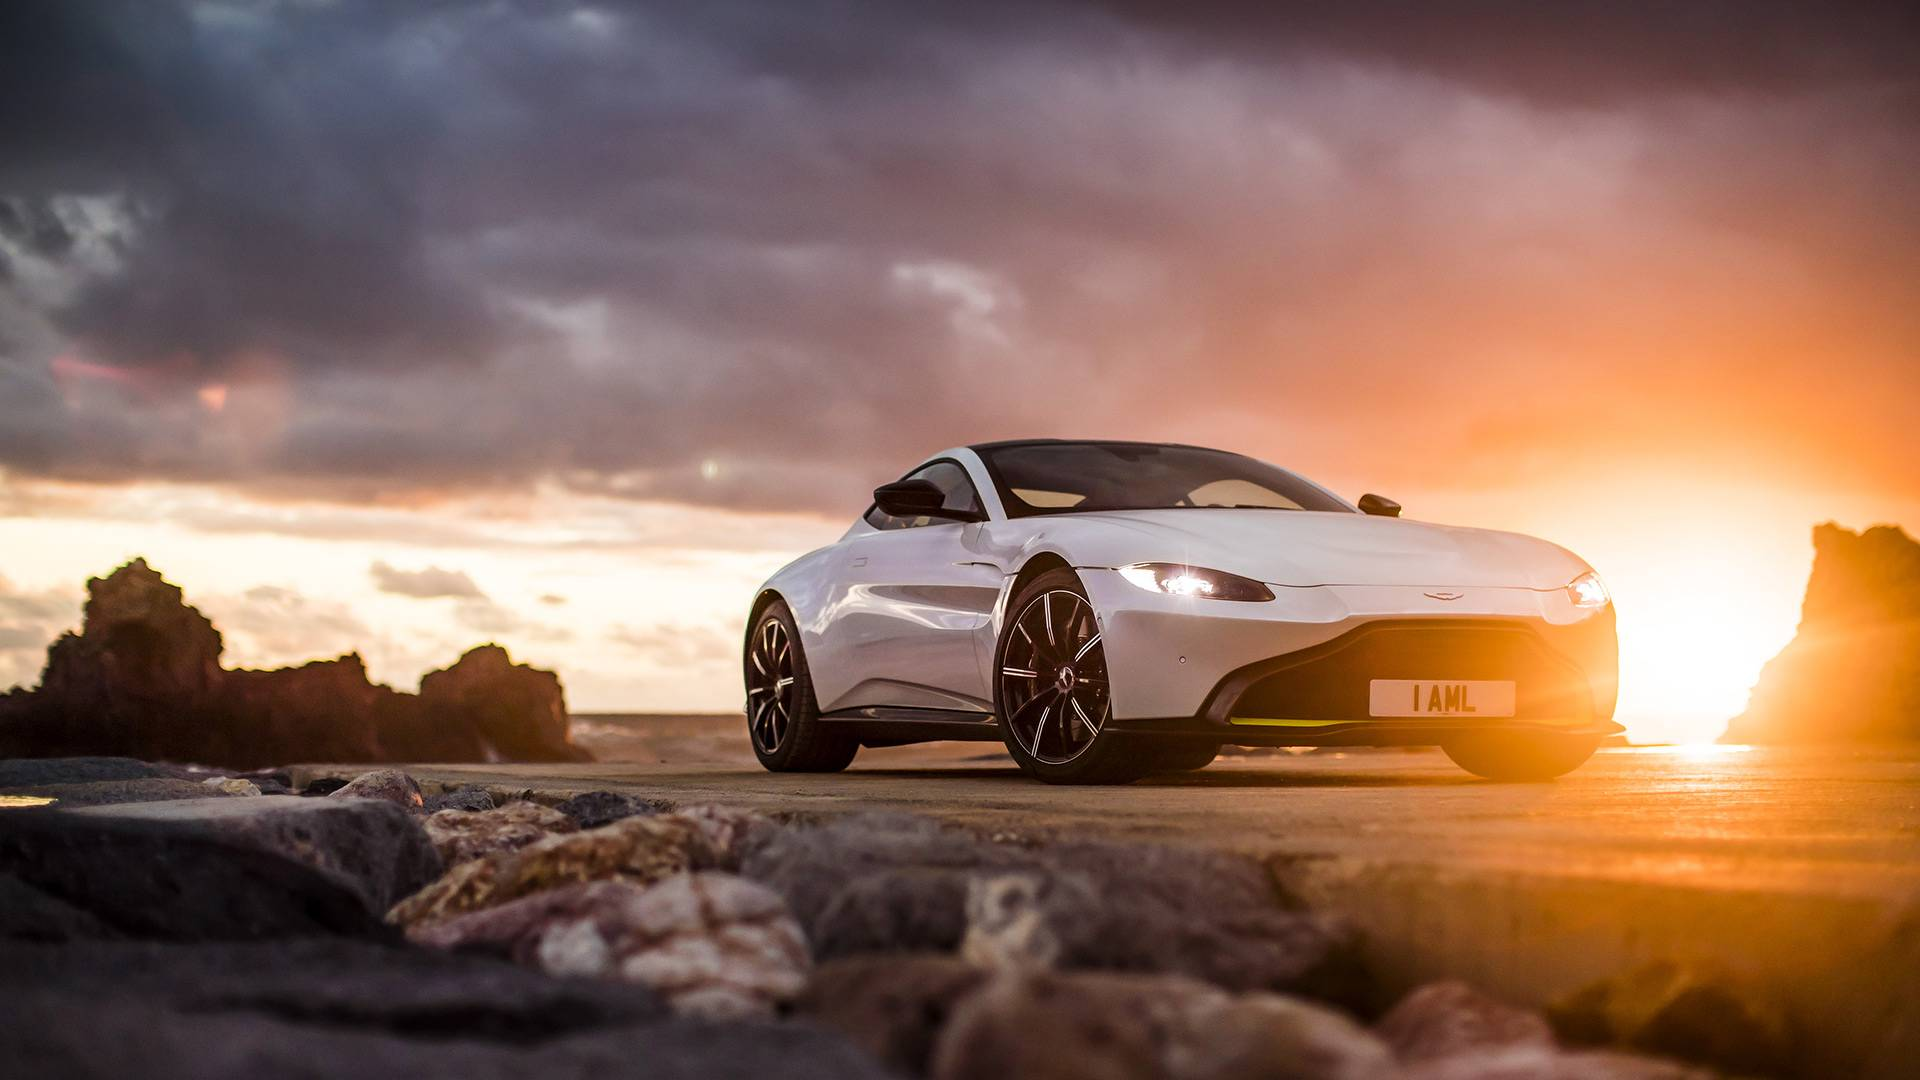 Tough Shift Manual Gearbox For Aston Martin Vantage Not Coming Soon - Aston martin vantage